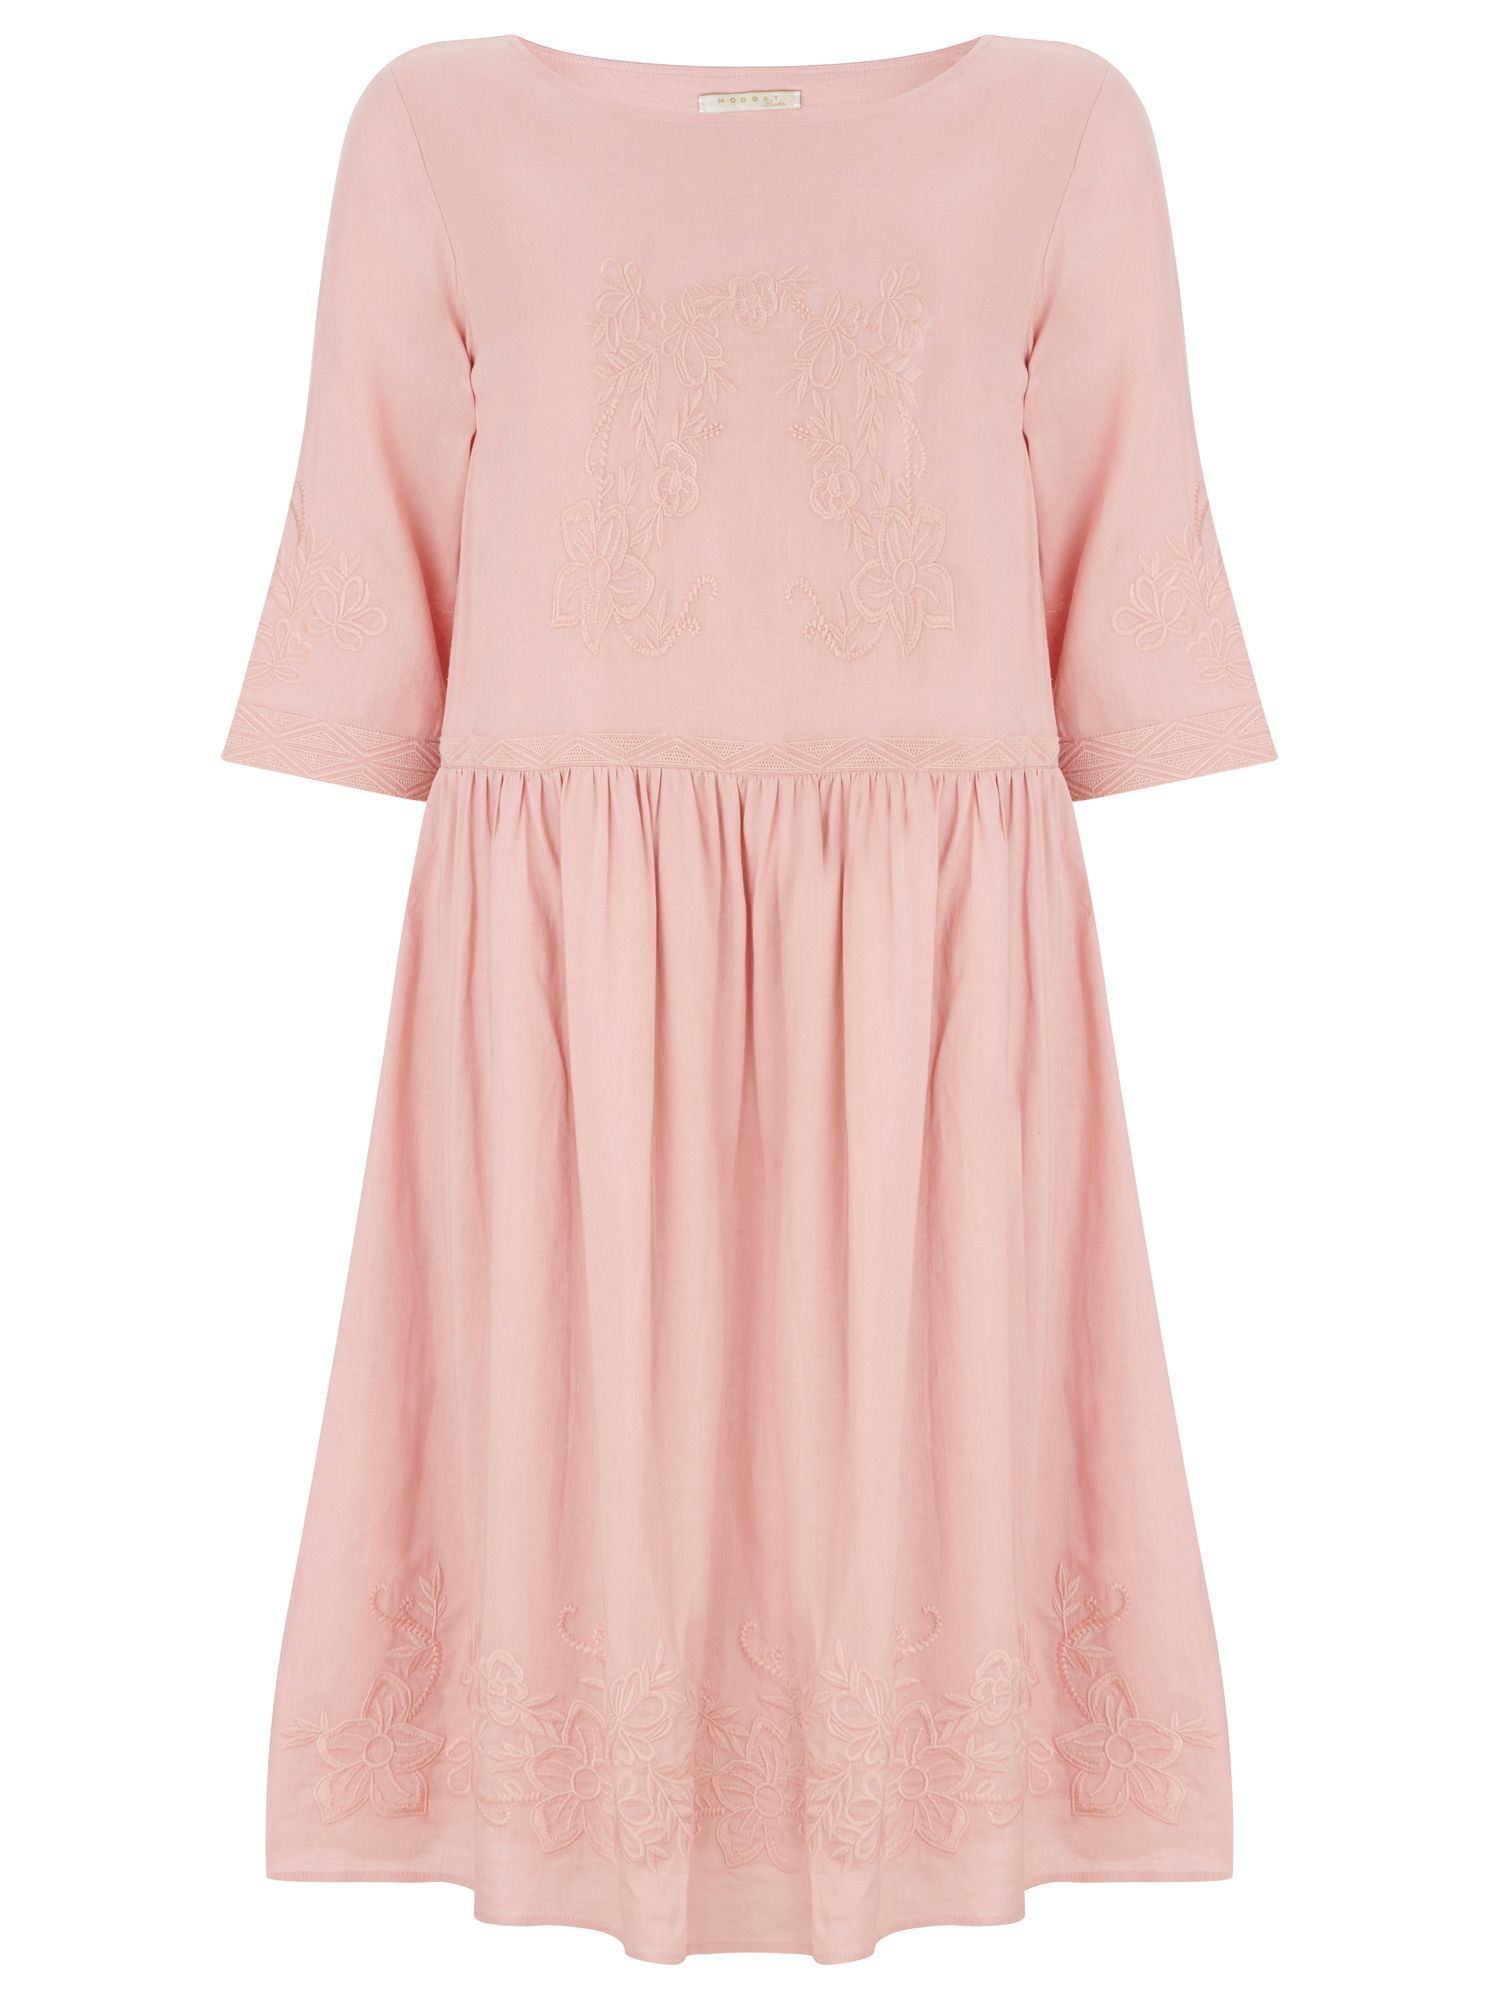 Nougat London Poppy Linen Dress, Pink